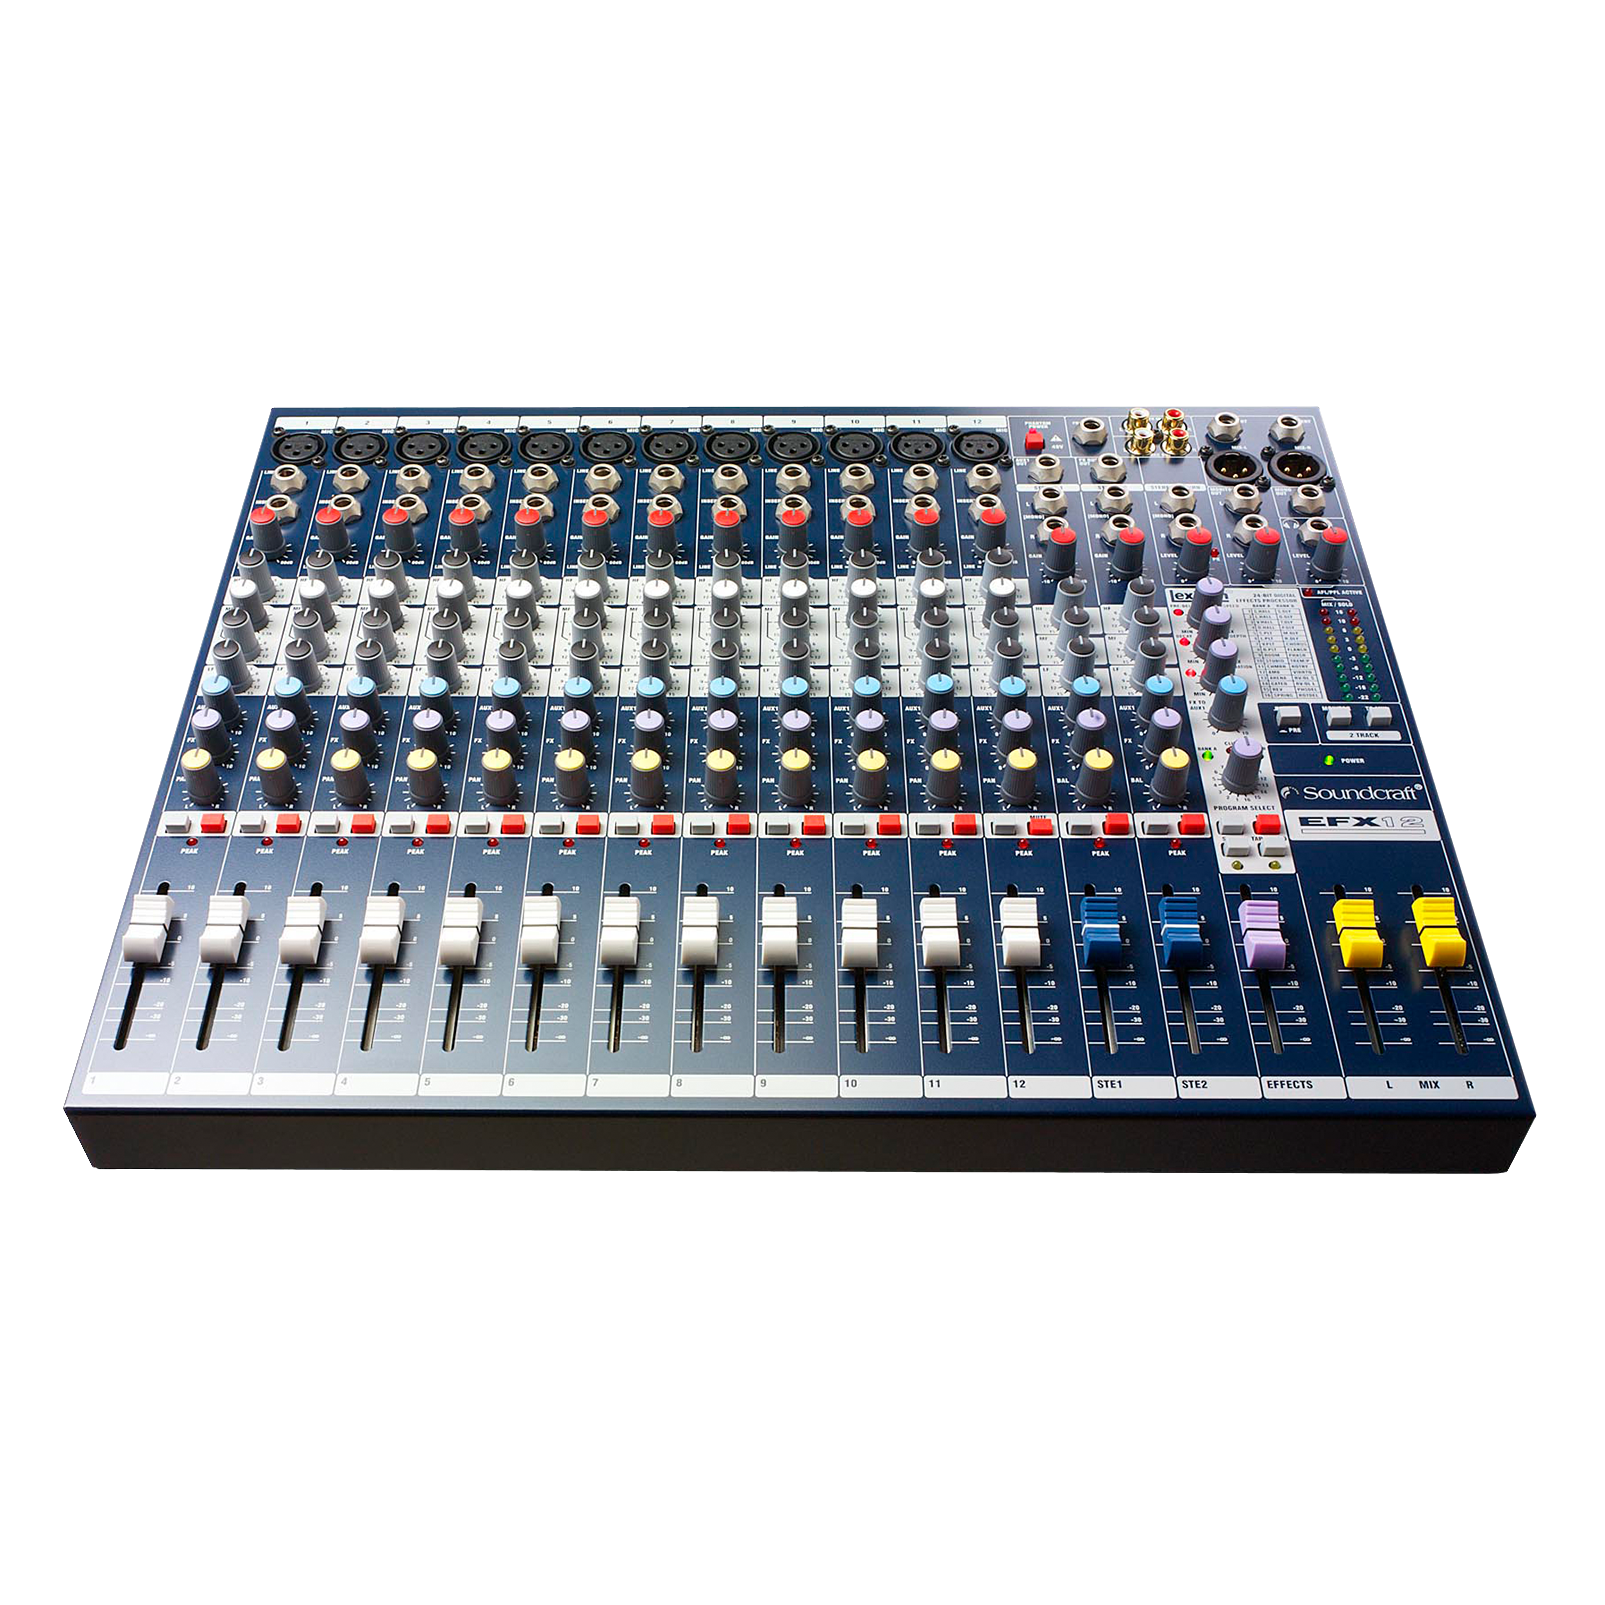 EFX12 - Dark Blue - Compact analogue 12 channel mixer with built in effects - Detailshot 1